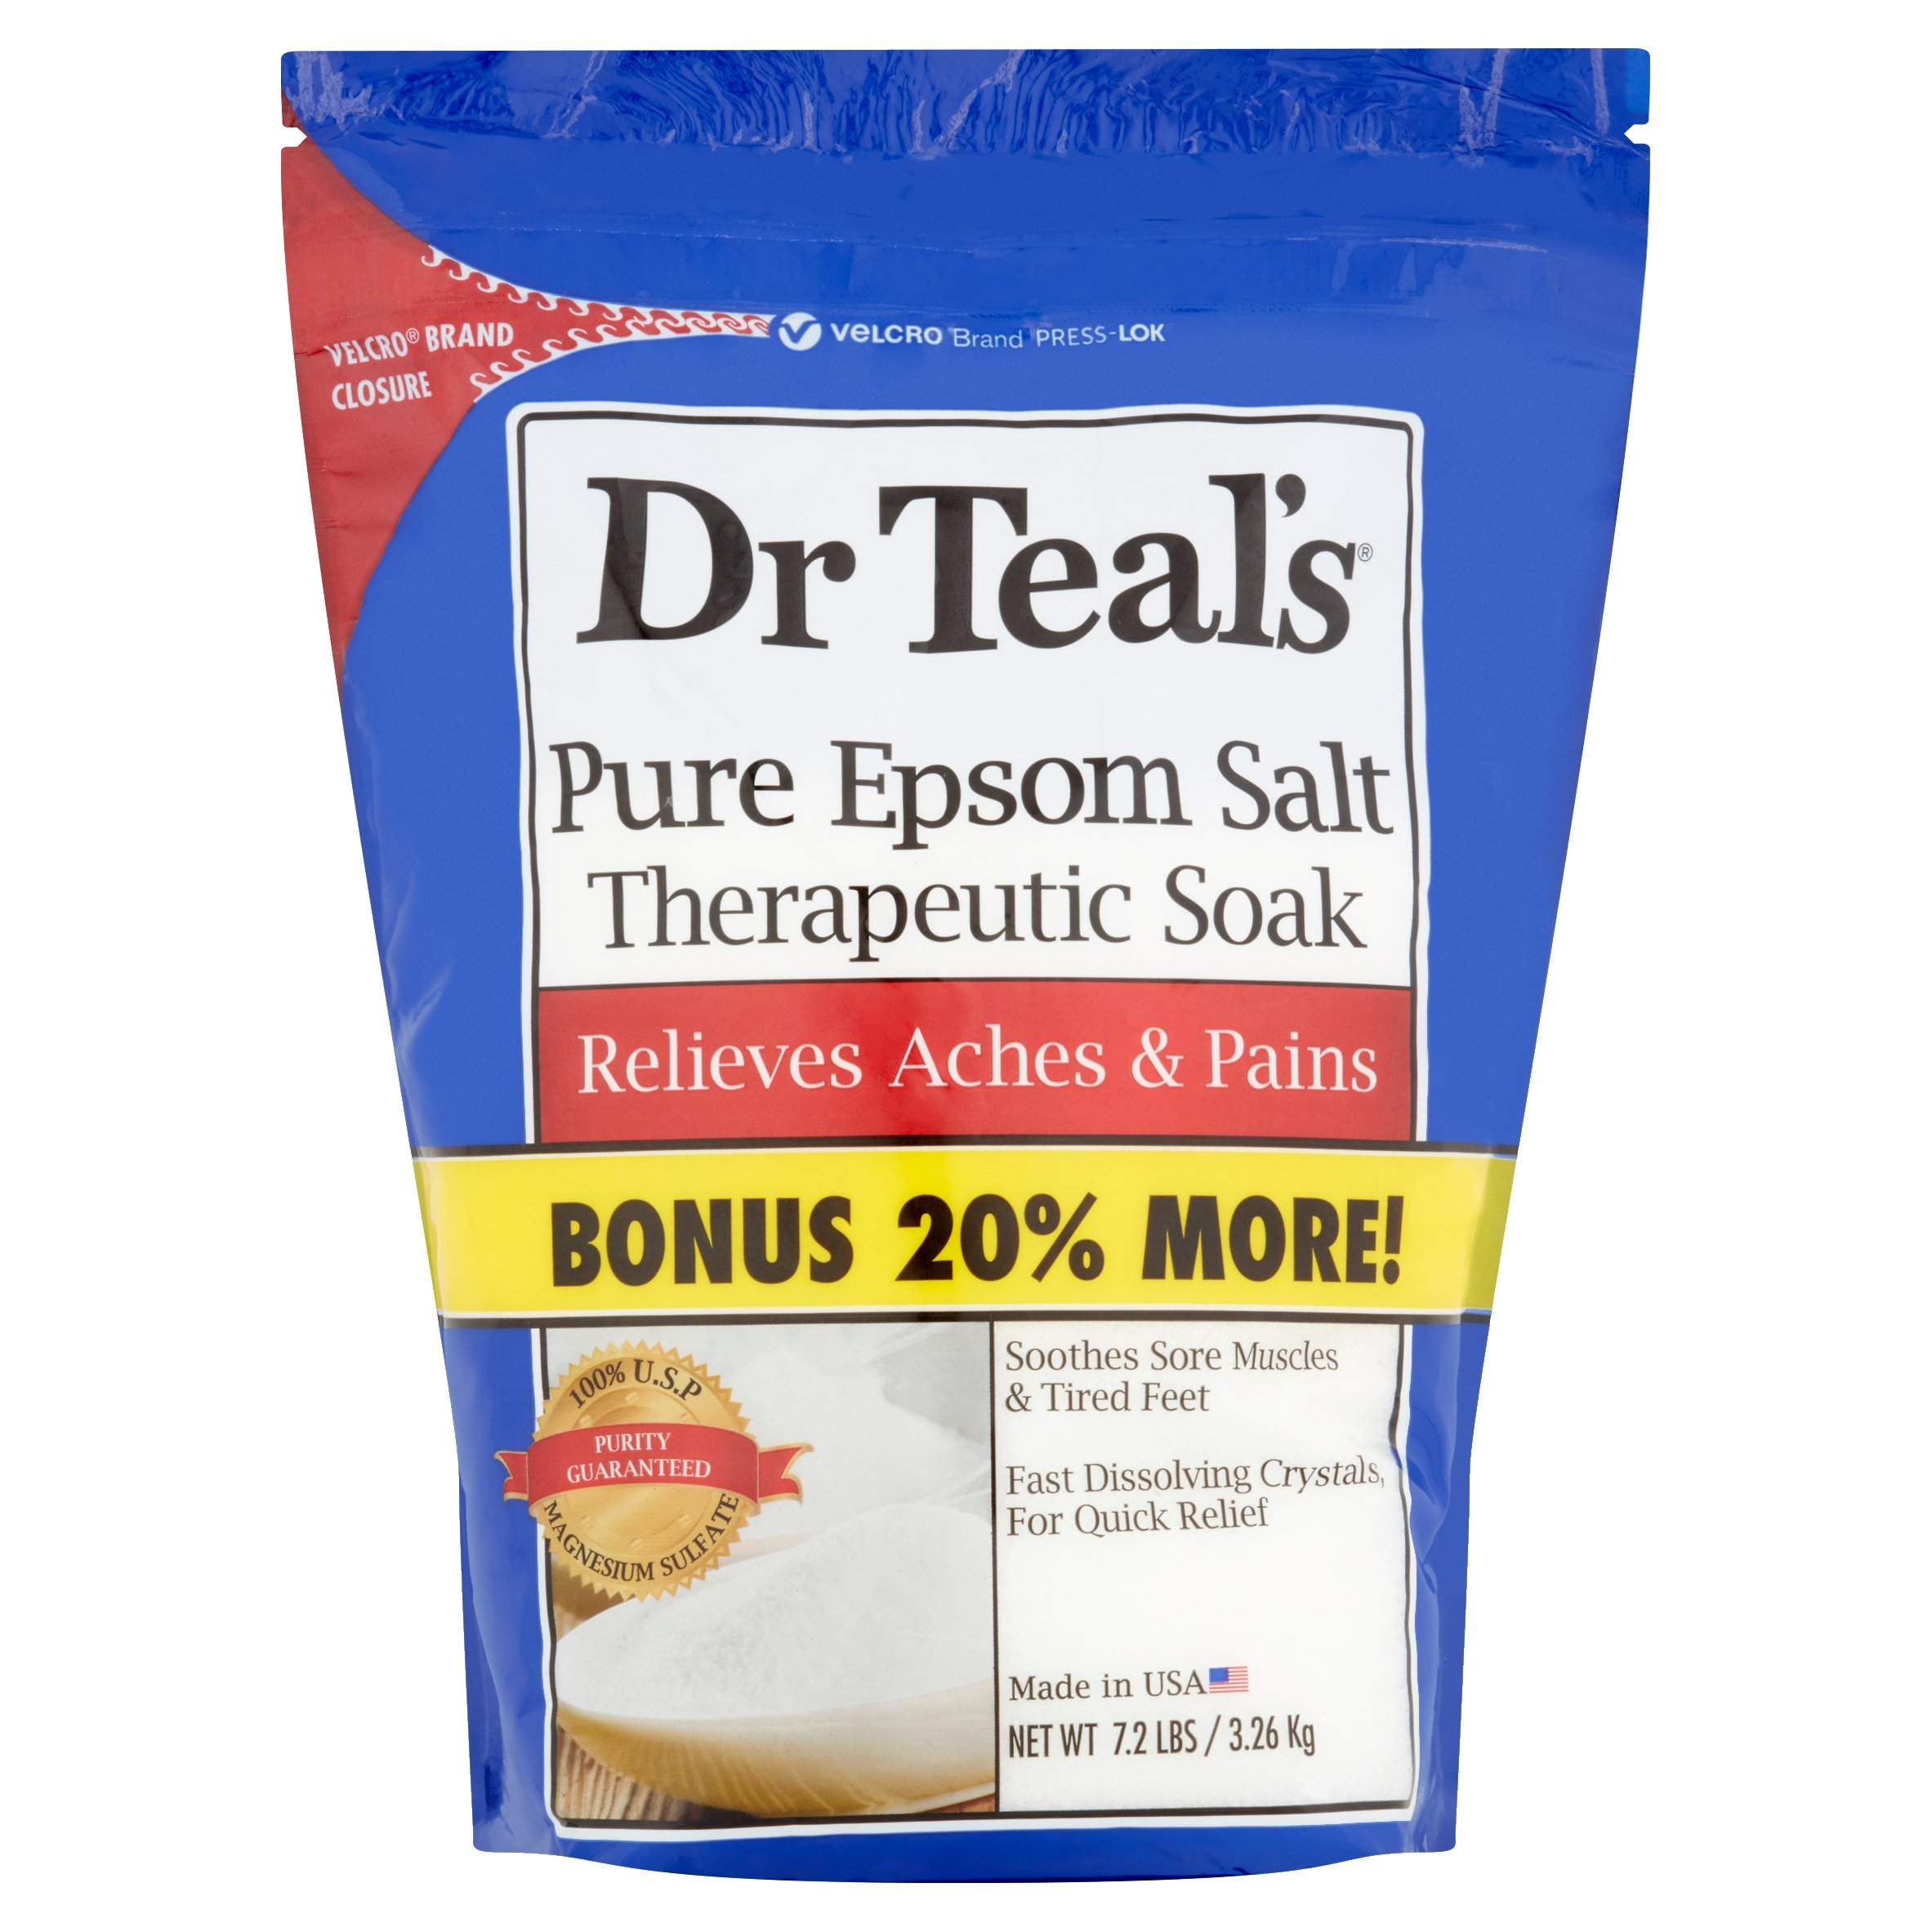 Dr. Teal's Pure Epsom Salt Therapeutic Soak, 7.2 lbs